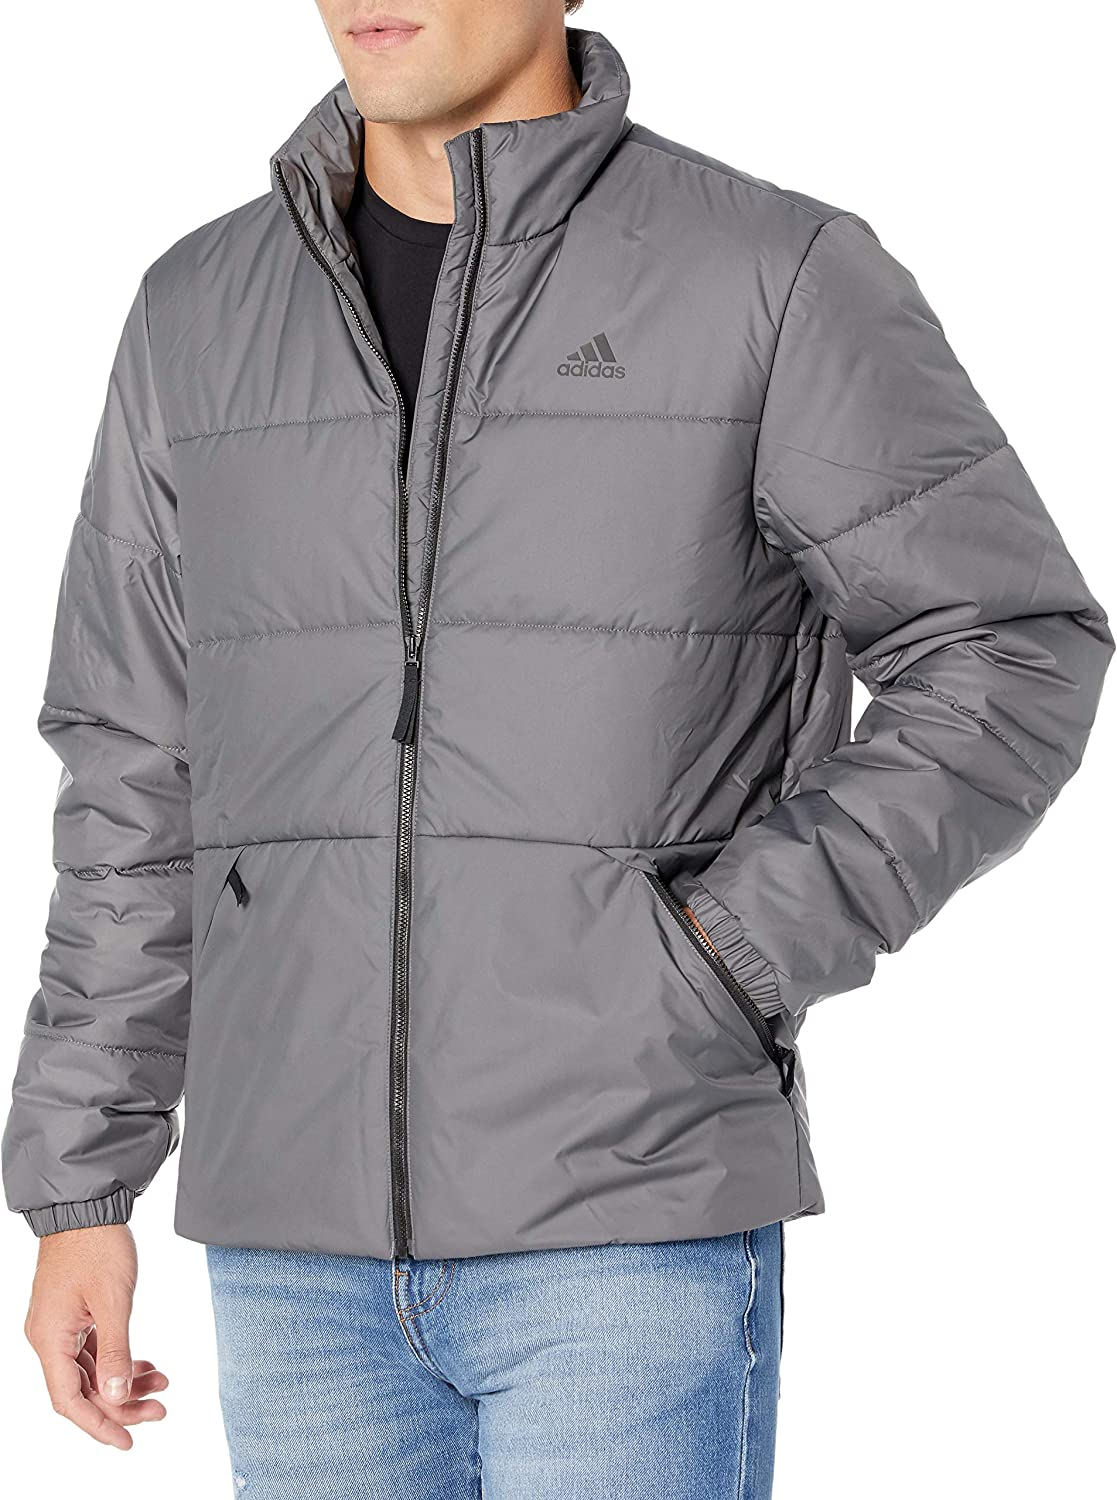 adidas 70% OFF Outlet Max 52% OFF mens Basic Insulated Jacket 3-stripes